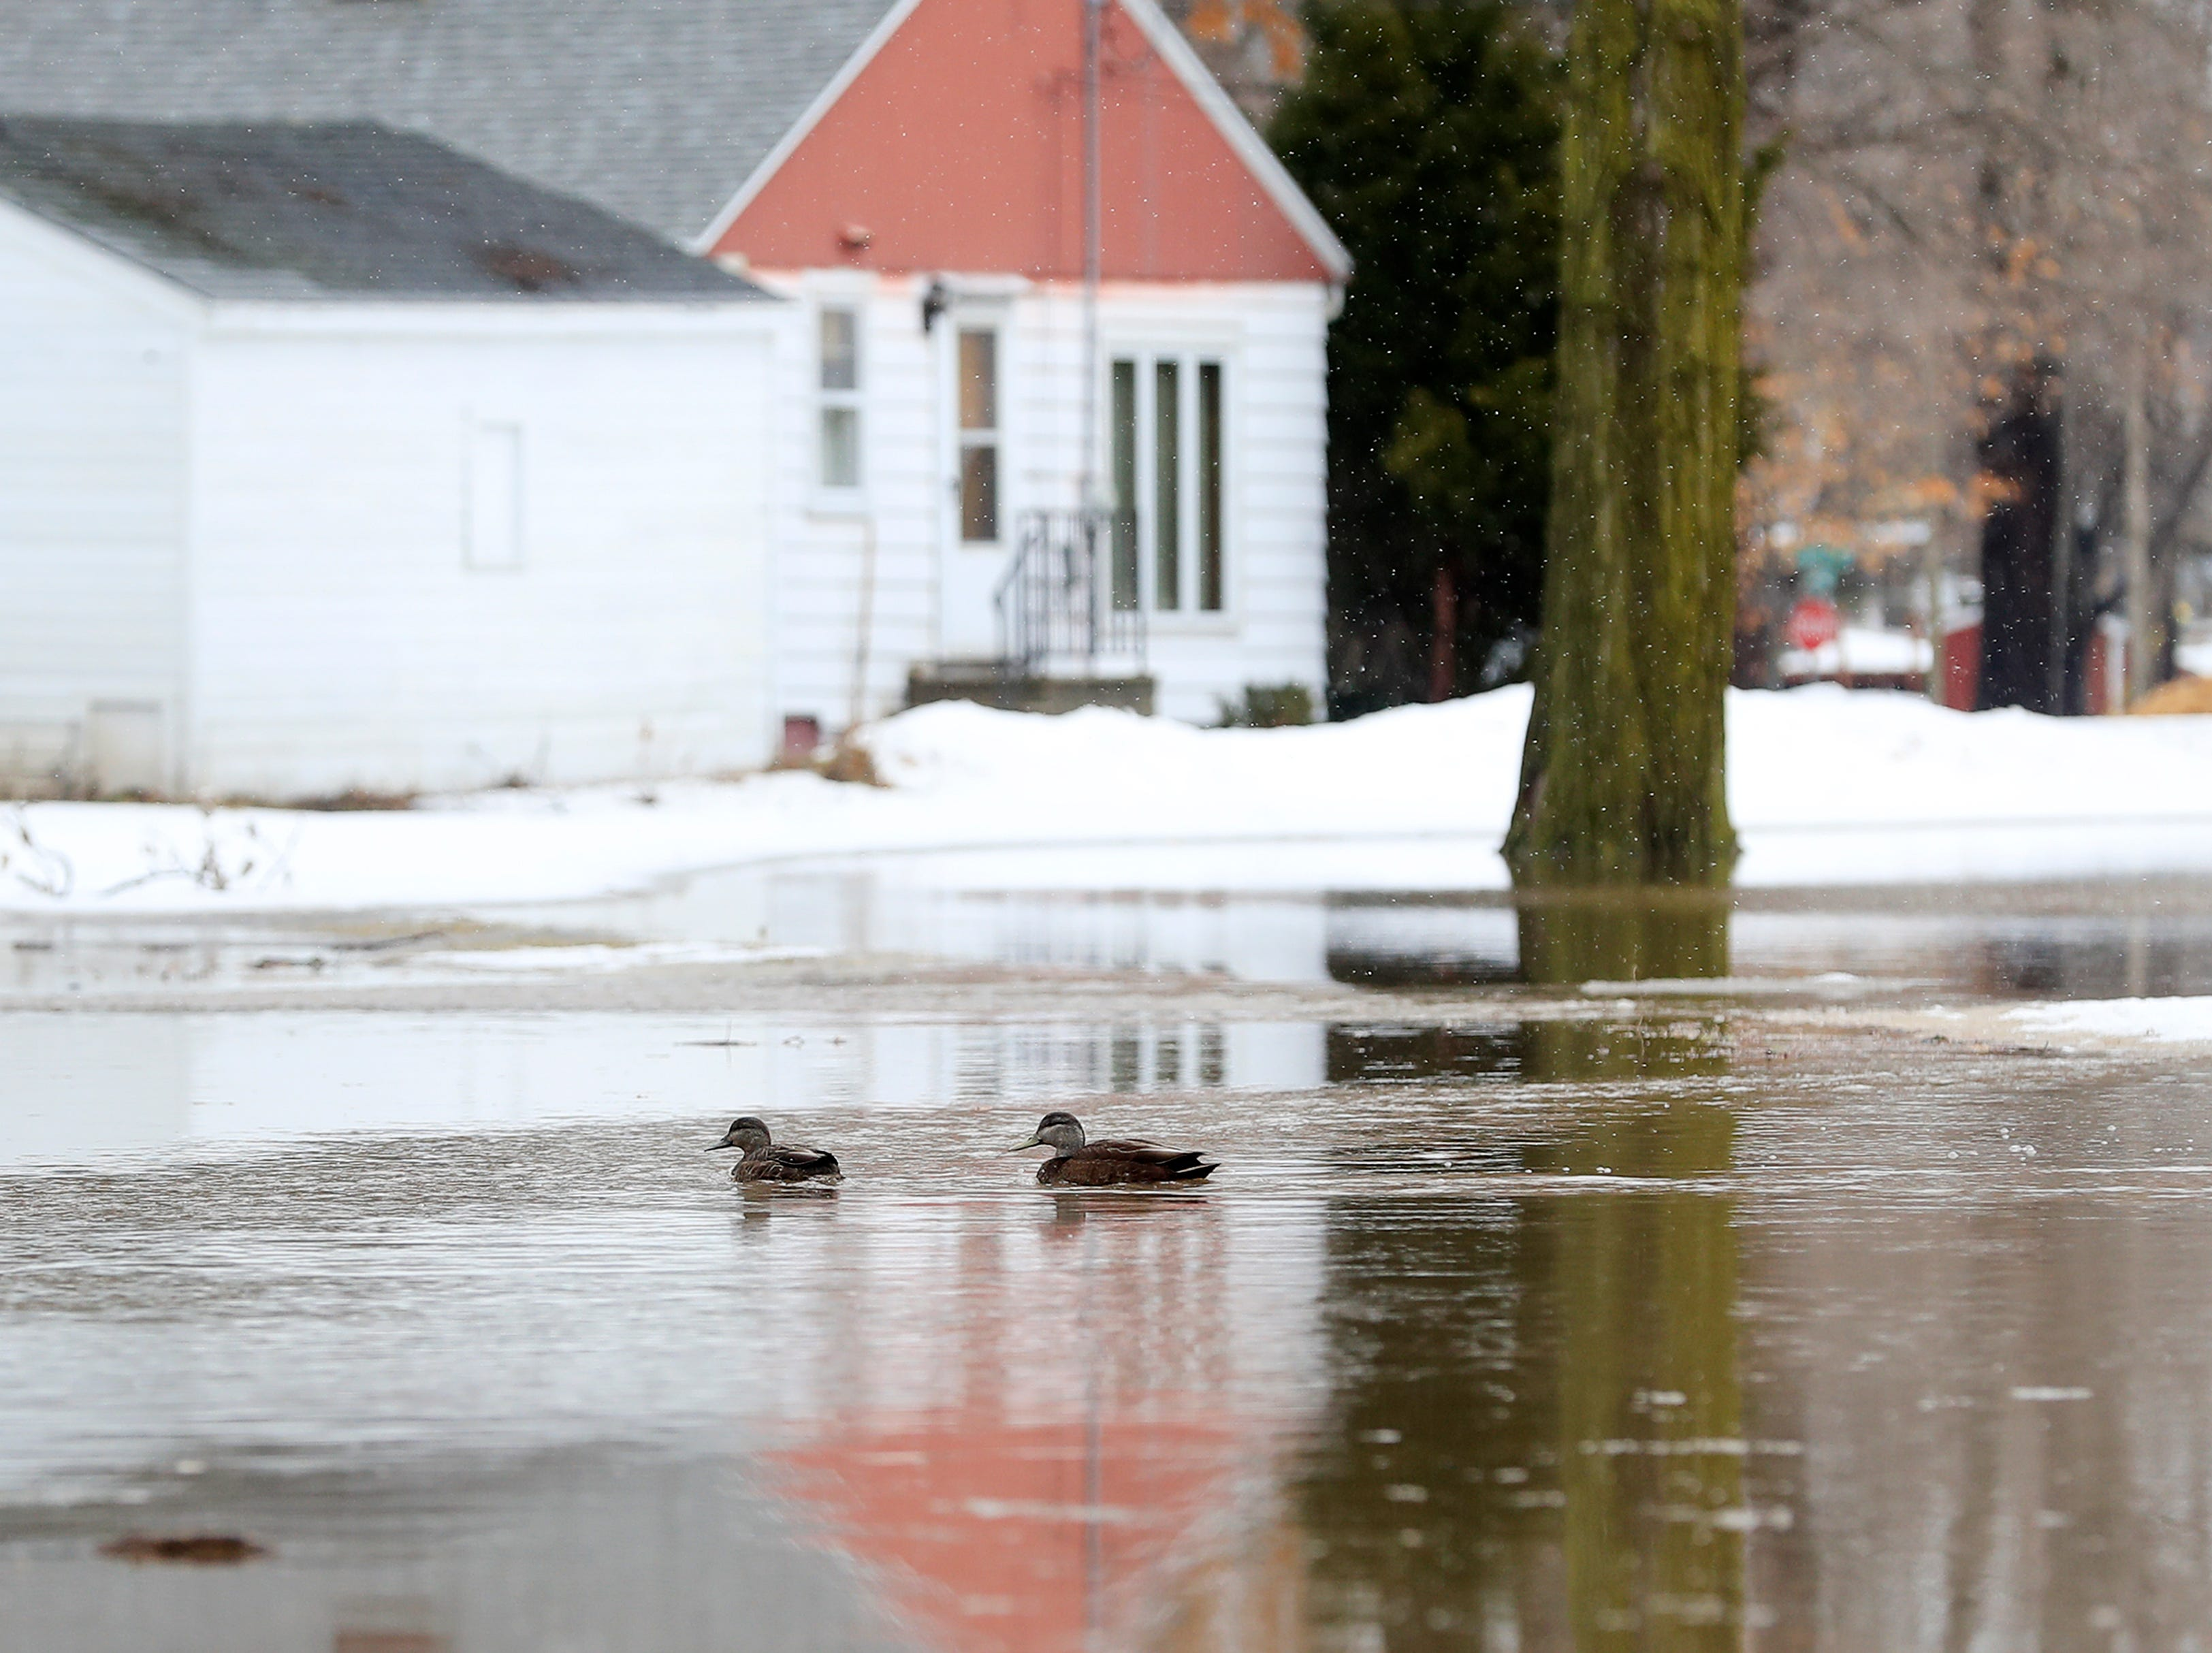 Ducks swim through floodwaters near Mason Street on Friday, March 15, 2019 in Green Bay, Wis.